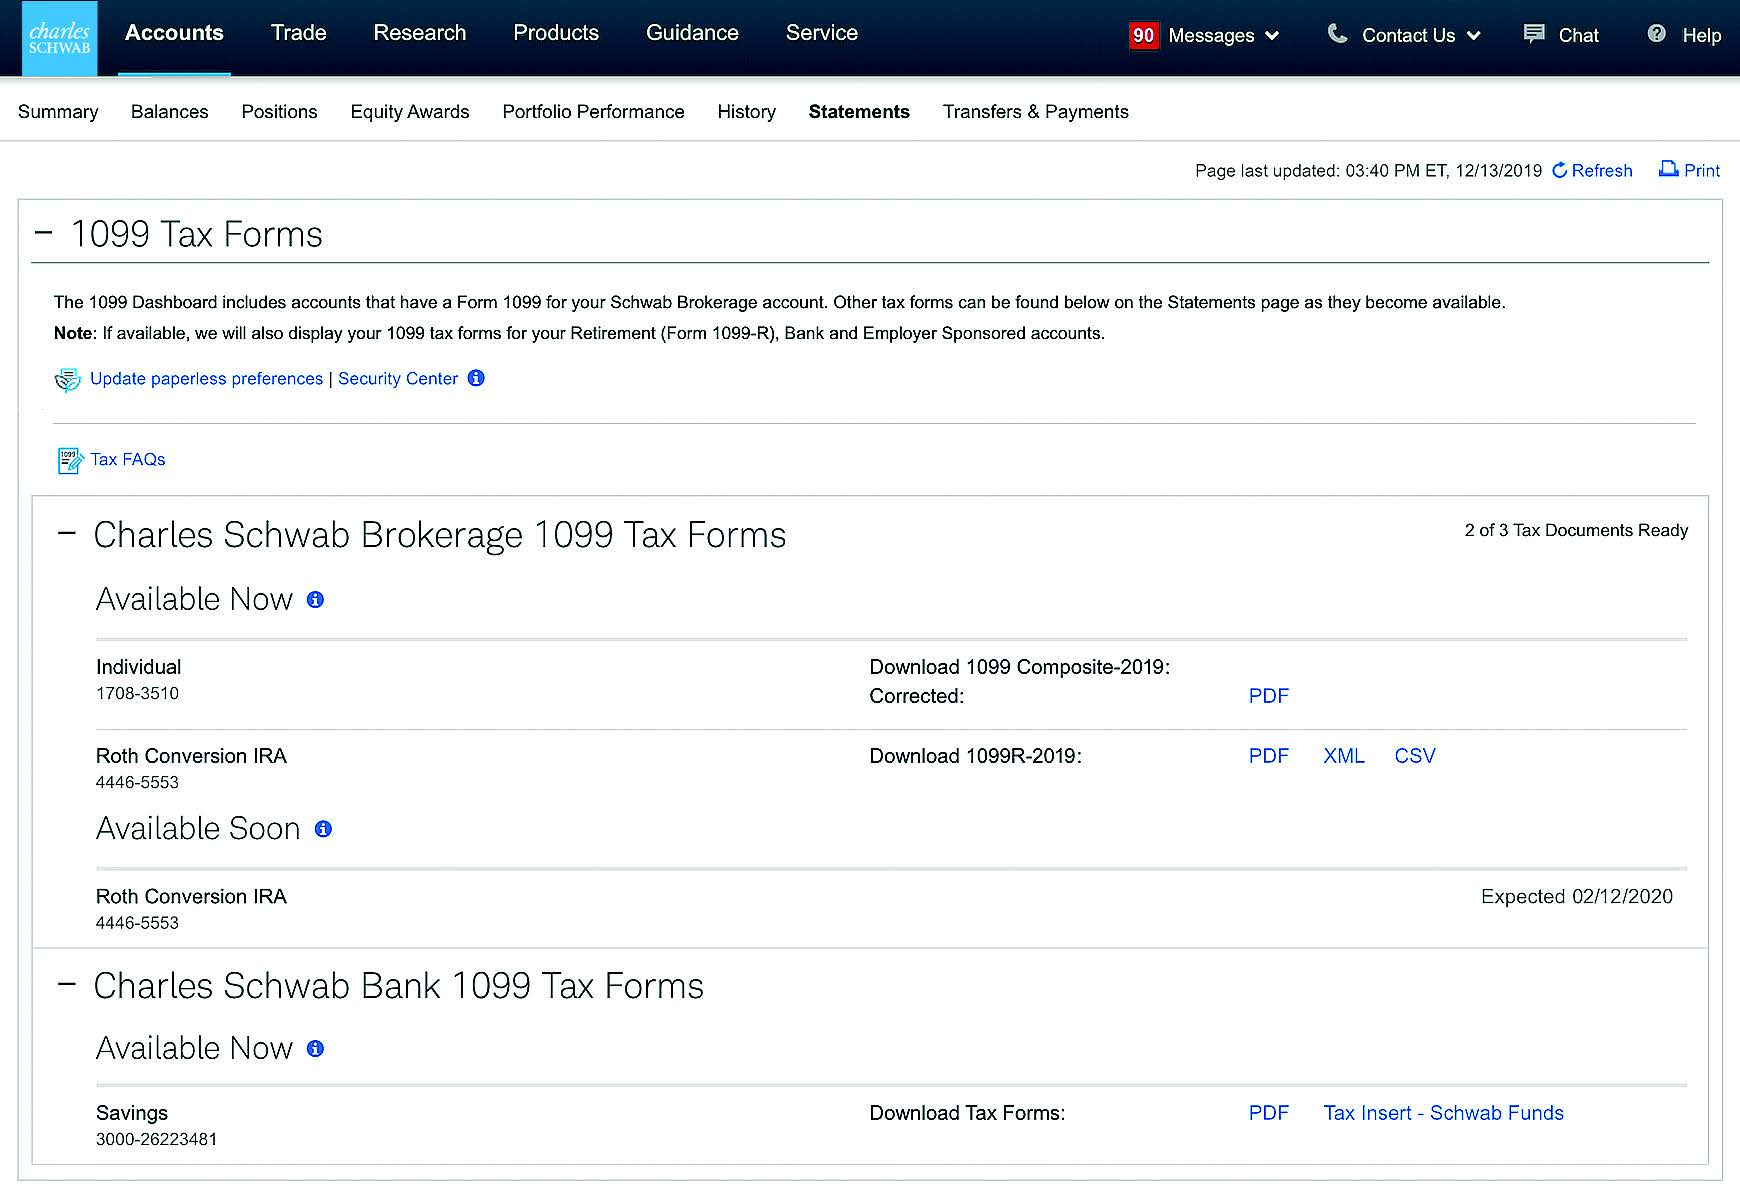 Screenshot of Charles Schwab website